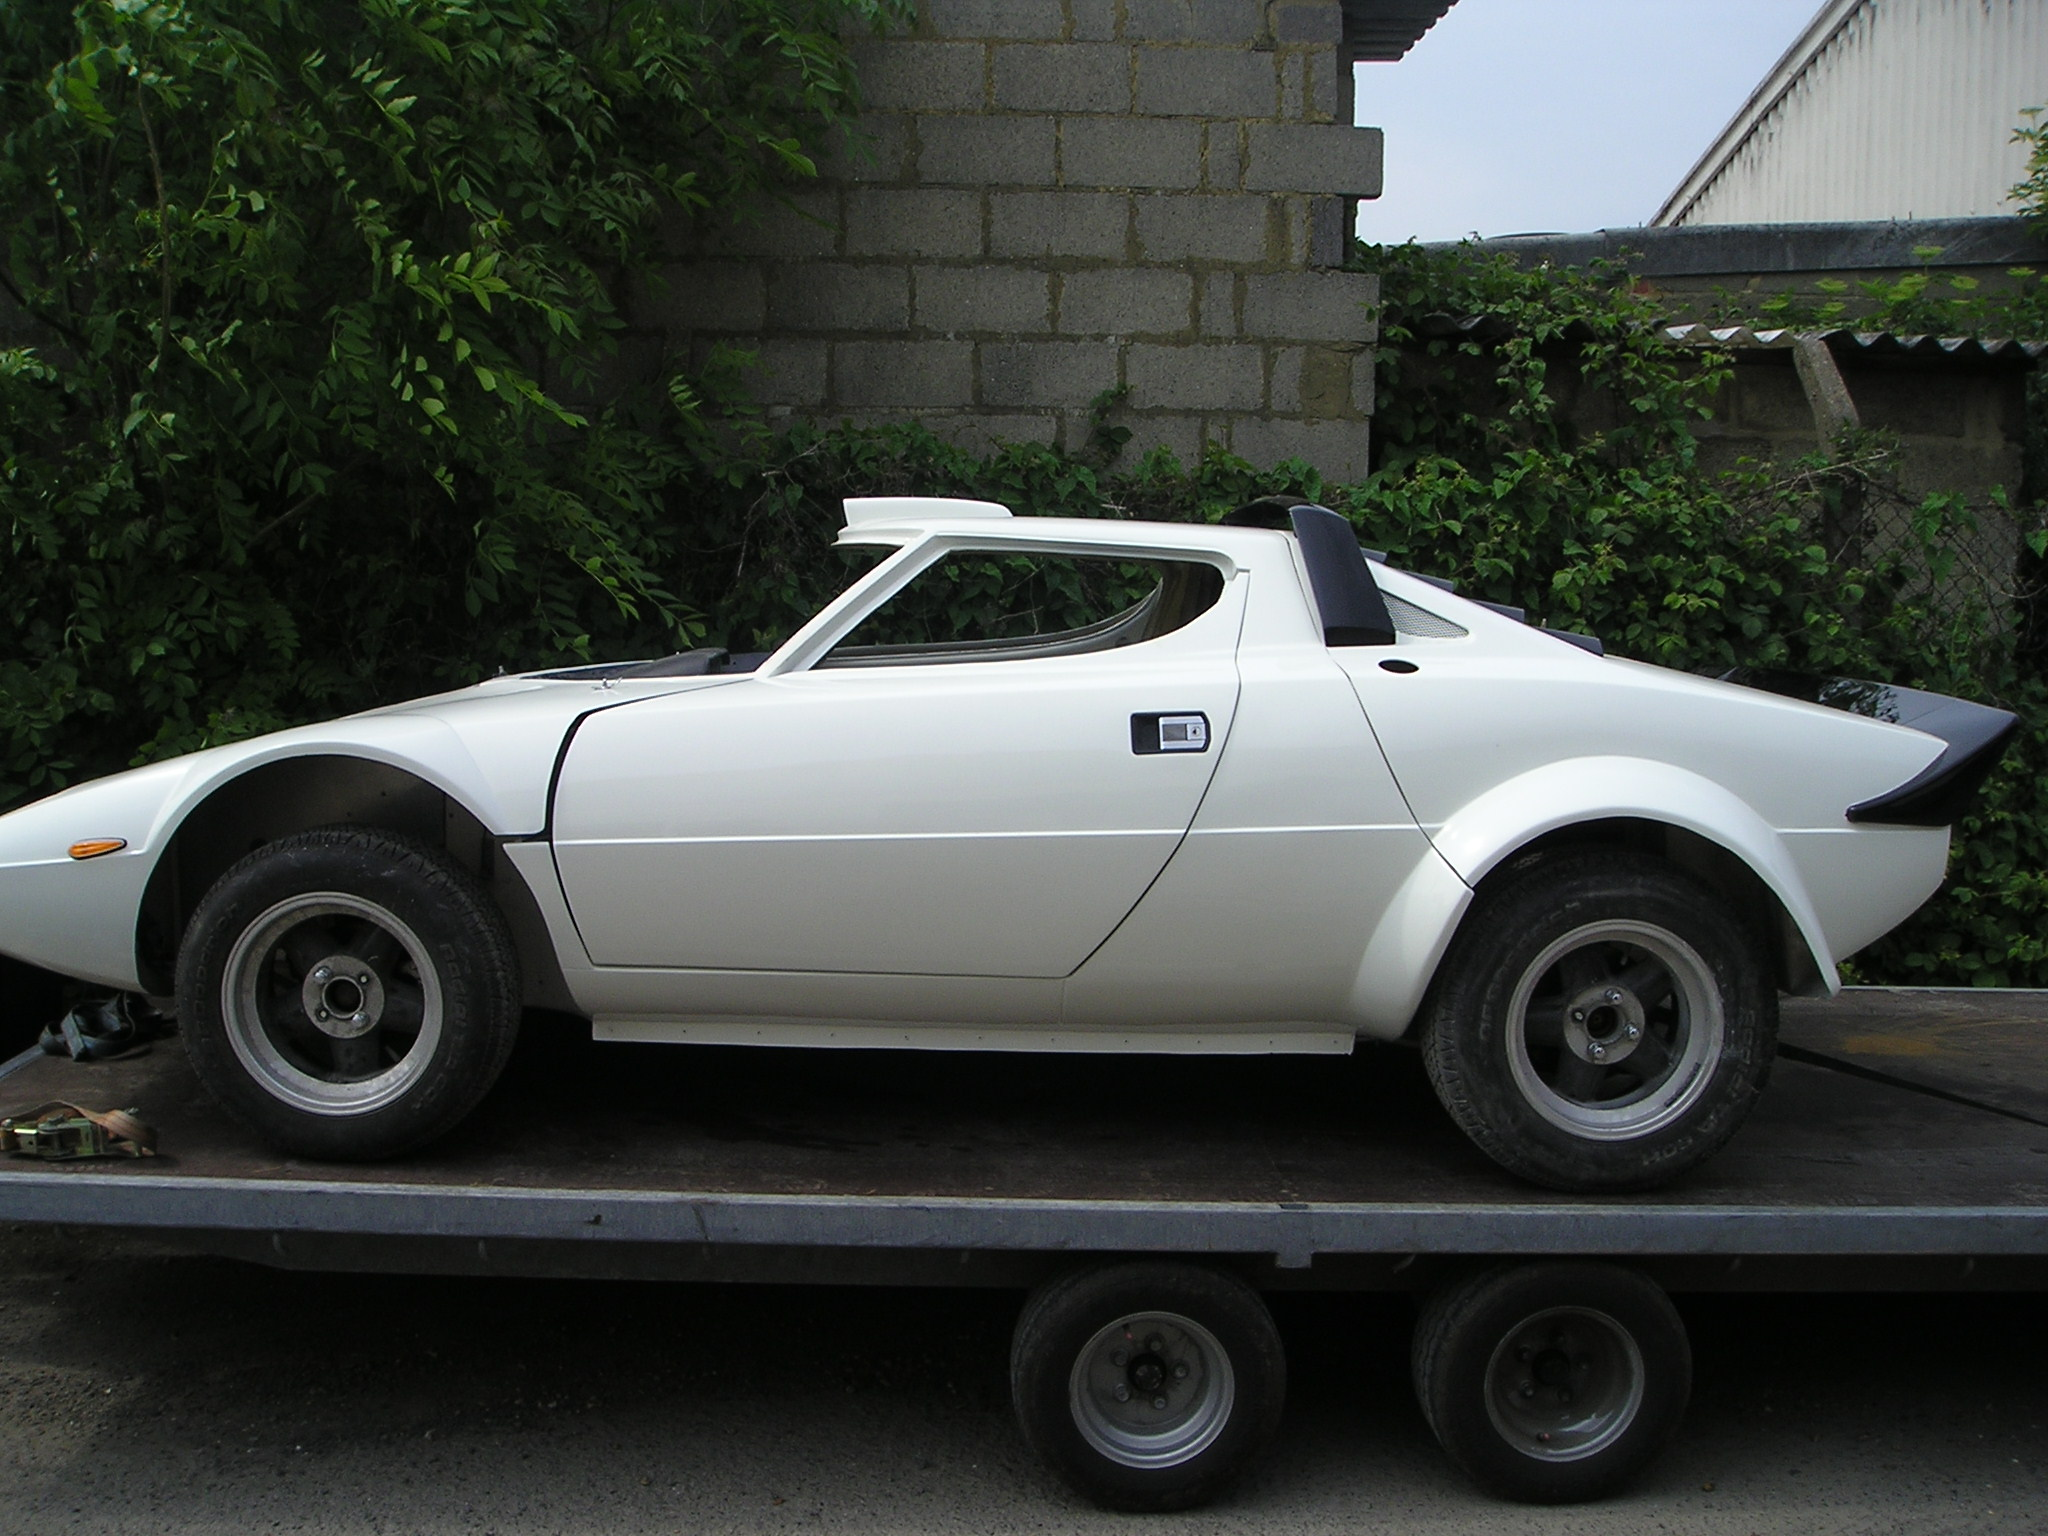 Lancia Stratos Kit Car For Sale >> Welcome to Classic Car Restoration & Repair – Classic Car Restoration and Repair